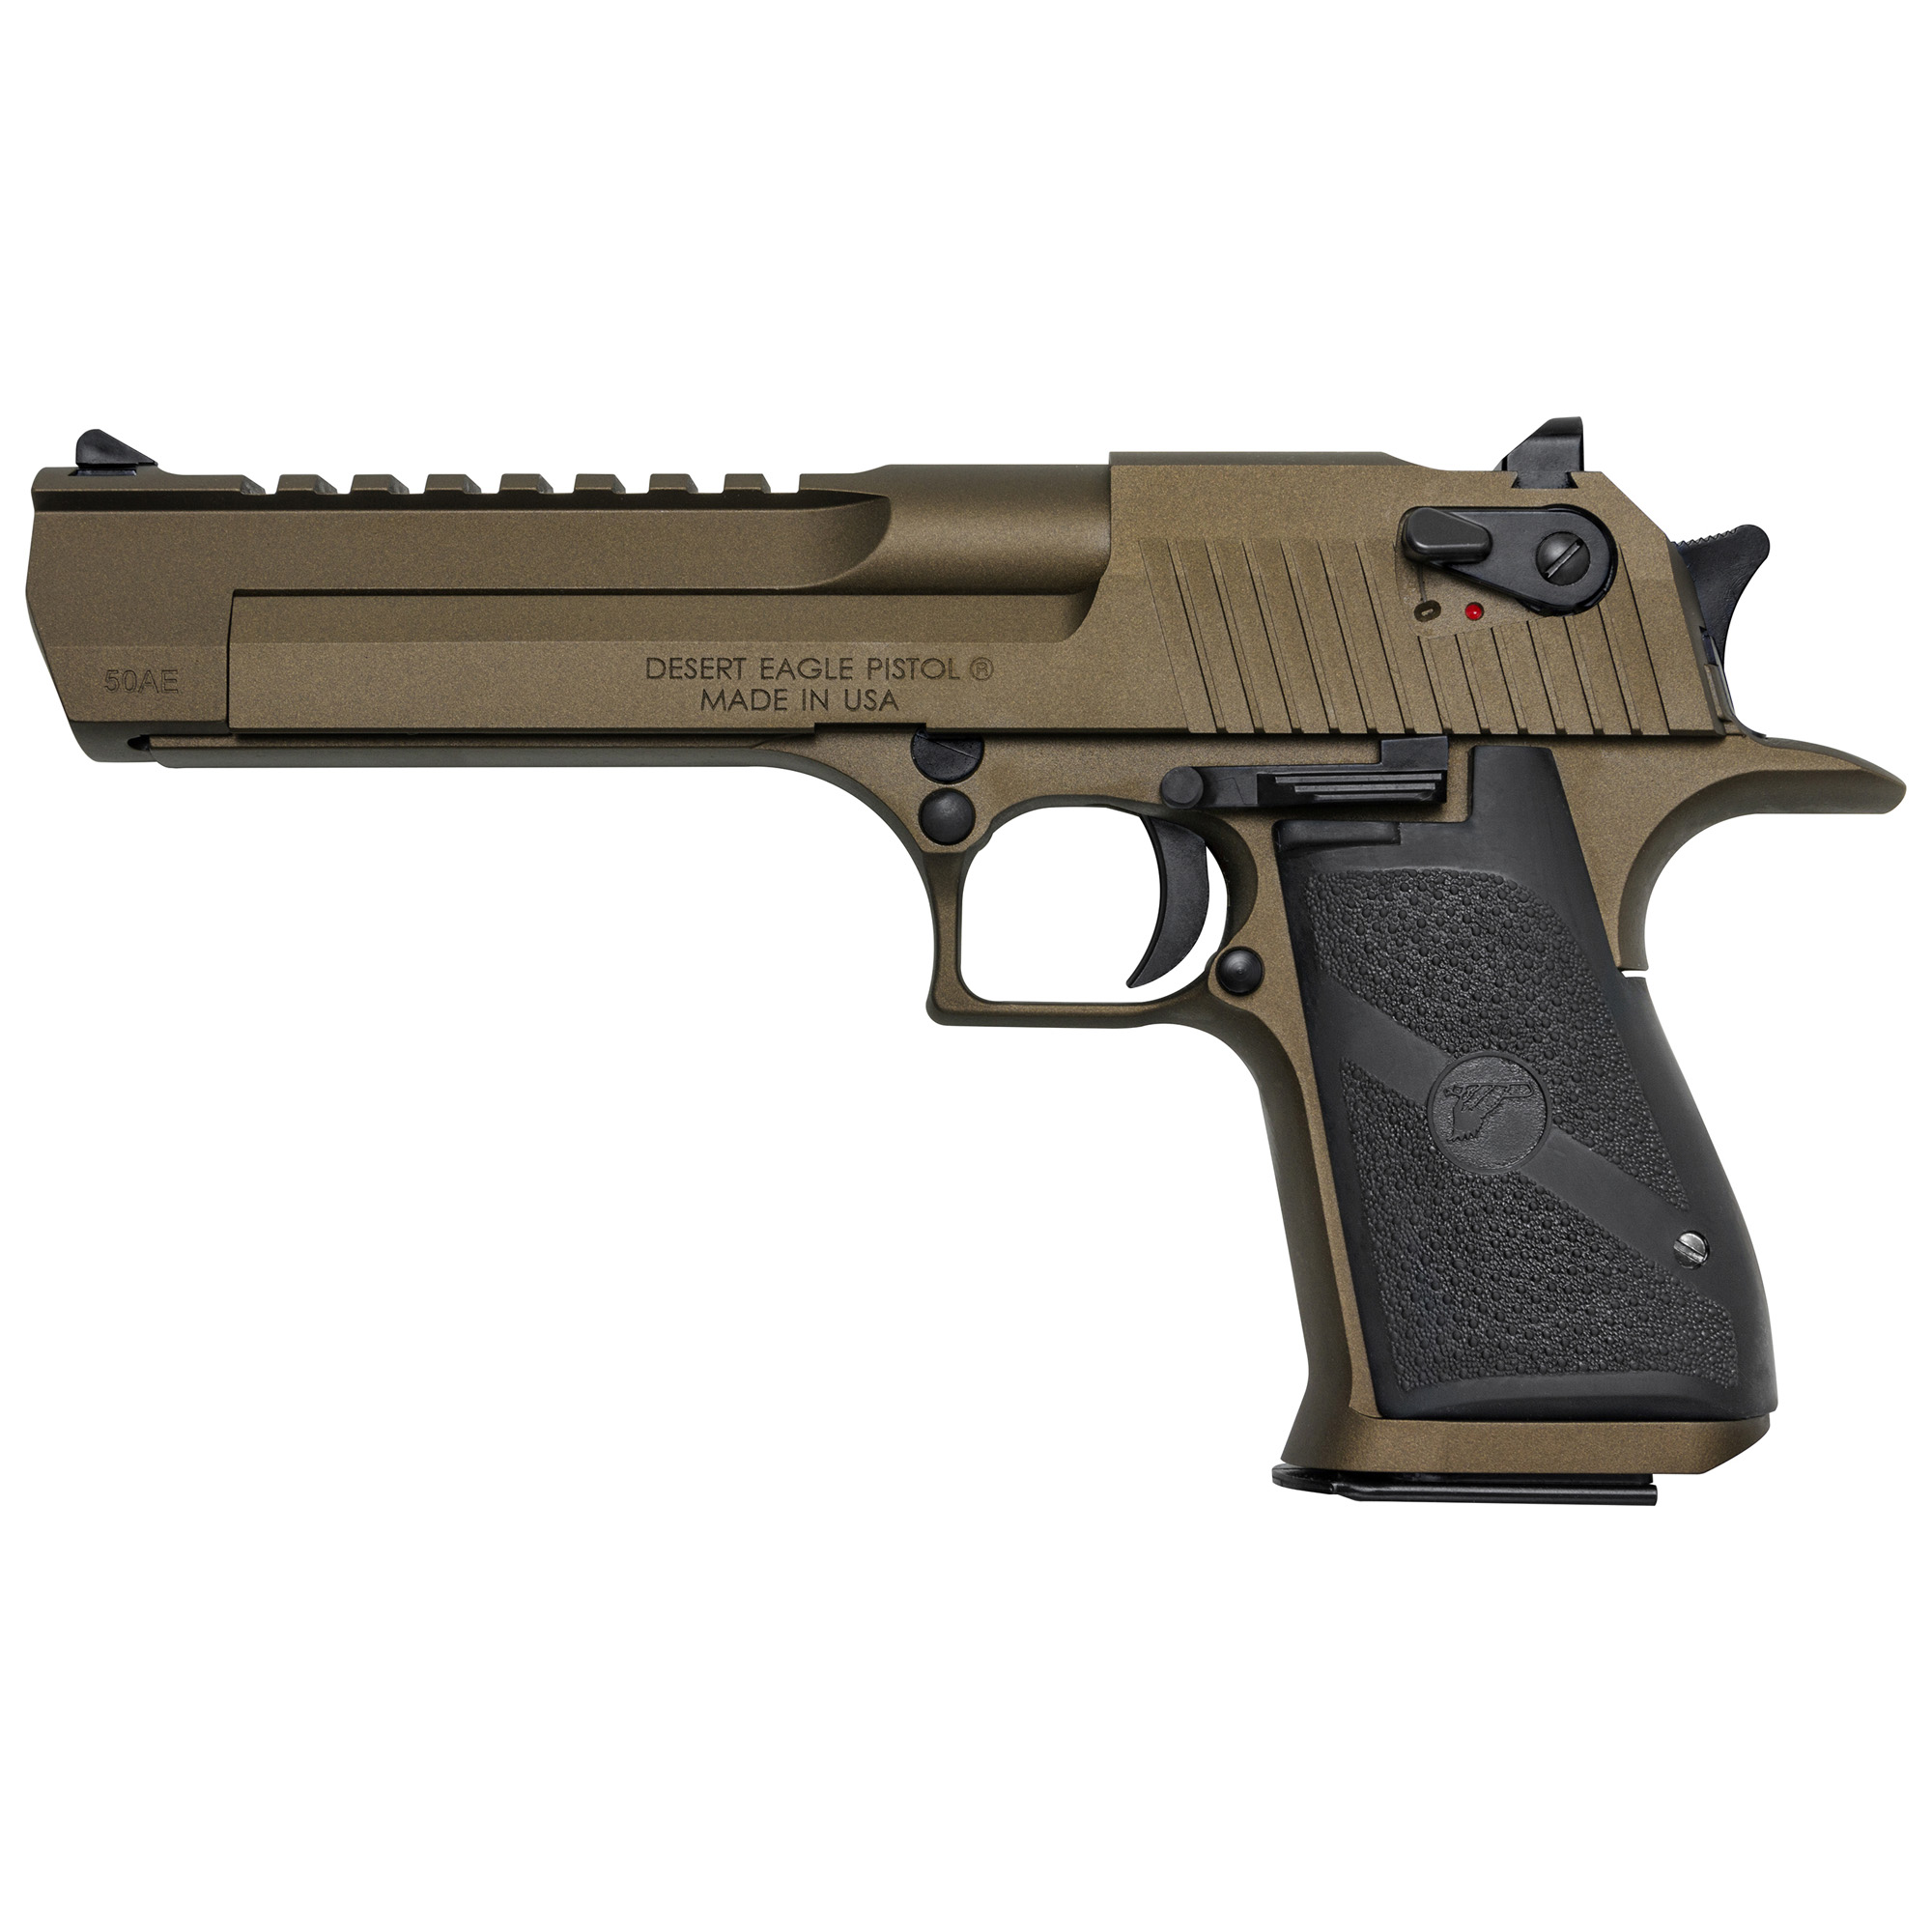 """The manufacturing ingenuity behind USA based"""" Magnum Research"""" Inc. (MRI) has been turning heads for decades. The iconic Desert Eagle has been featured on the Silver Screen"""" TV and video games"""" but now"""" MRI has made it even sexier. Introducing the Mark XIX Desert Eagle .50 AE and .44 Magnum in a new high temperature ceramic Cerakote(TM) coating called Burnt Bronze. The Burnt Bronze model has attractive black appointments which gives the pistol even more appeal. The construction of the Mark XIX Desert Eagle utilizes the latest CNC machine technology providing exacting specifications with tight tolerances creating a work of art in a precision firearm. The grip is anatomically formed and provides an ideal hand seating angle for two-handed shooting allowing for comfortable"""" rapid and accurate firing. The Weaver style accessory rail easily allows for aftermarket optics and scope rings. Includes one 7-round magazine."""